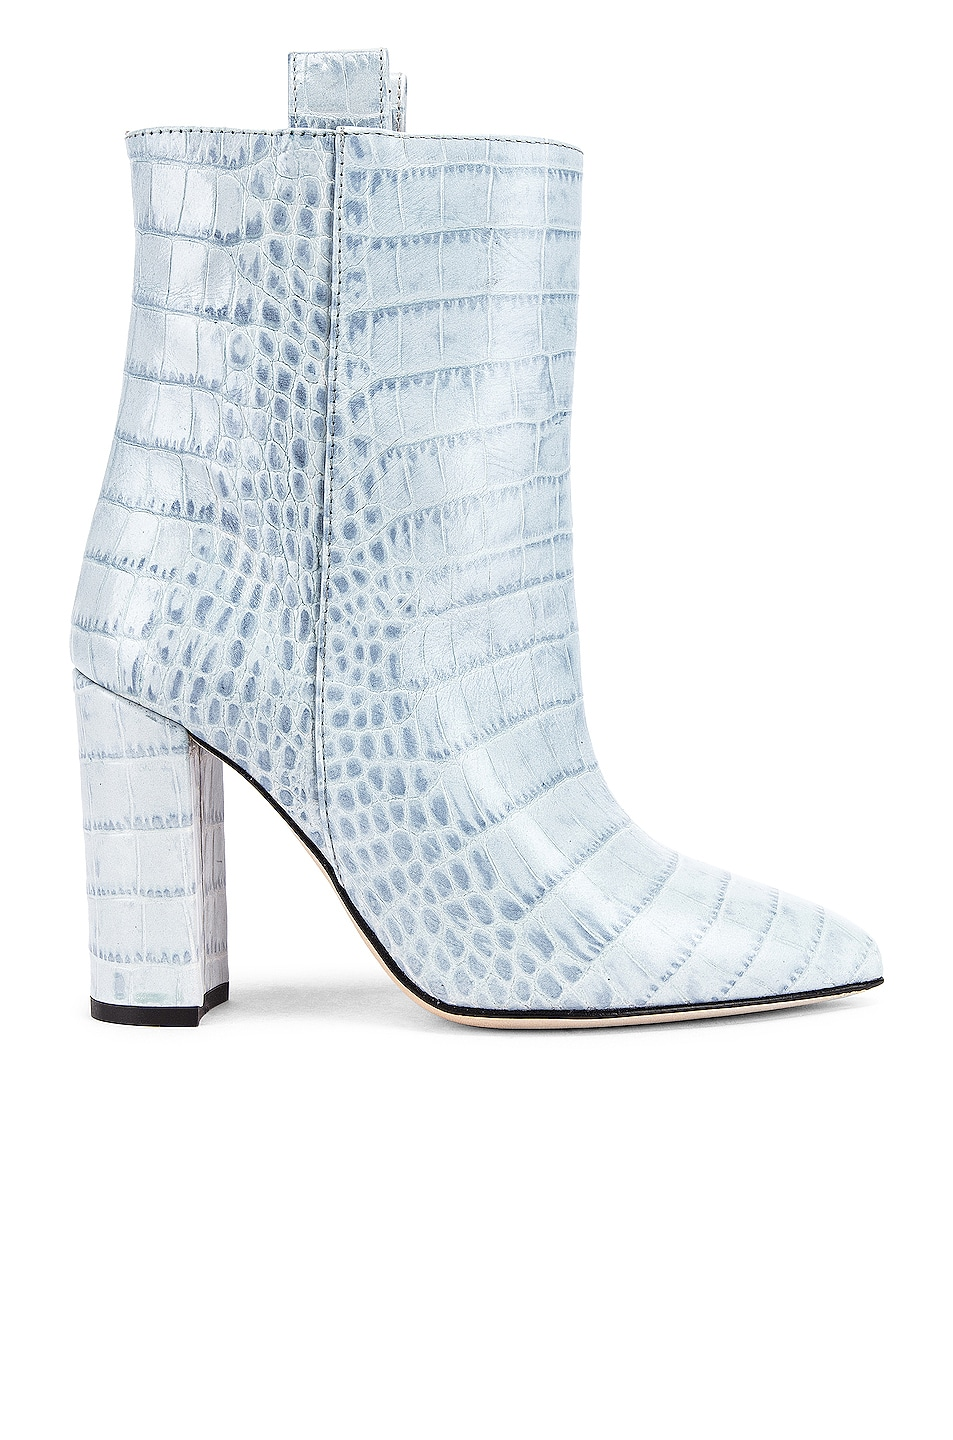 Image 1 of Paris Texas Moc Croco Ankle Boot in Light Blue